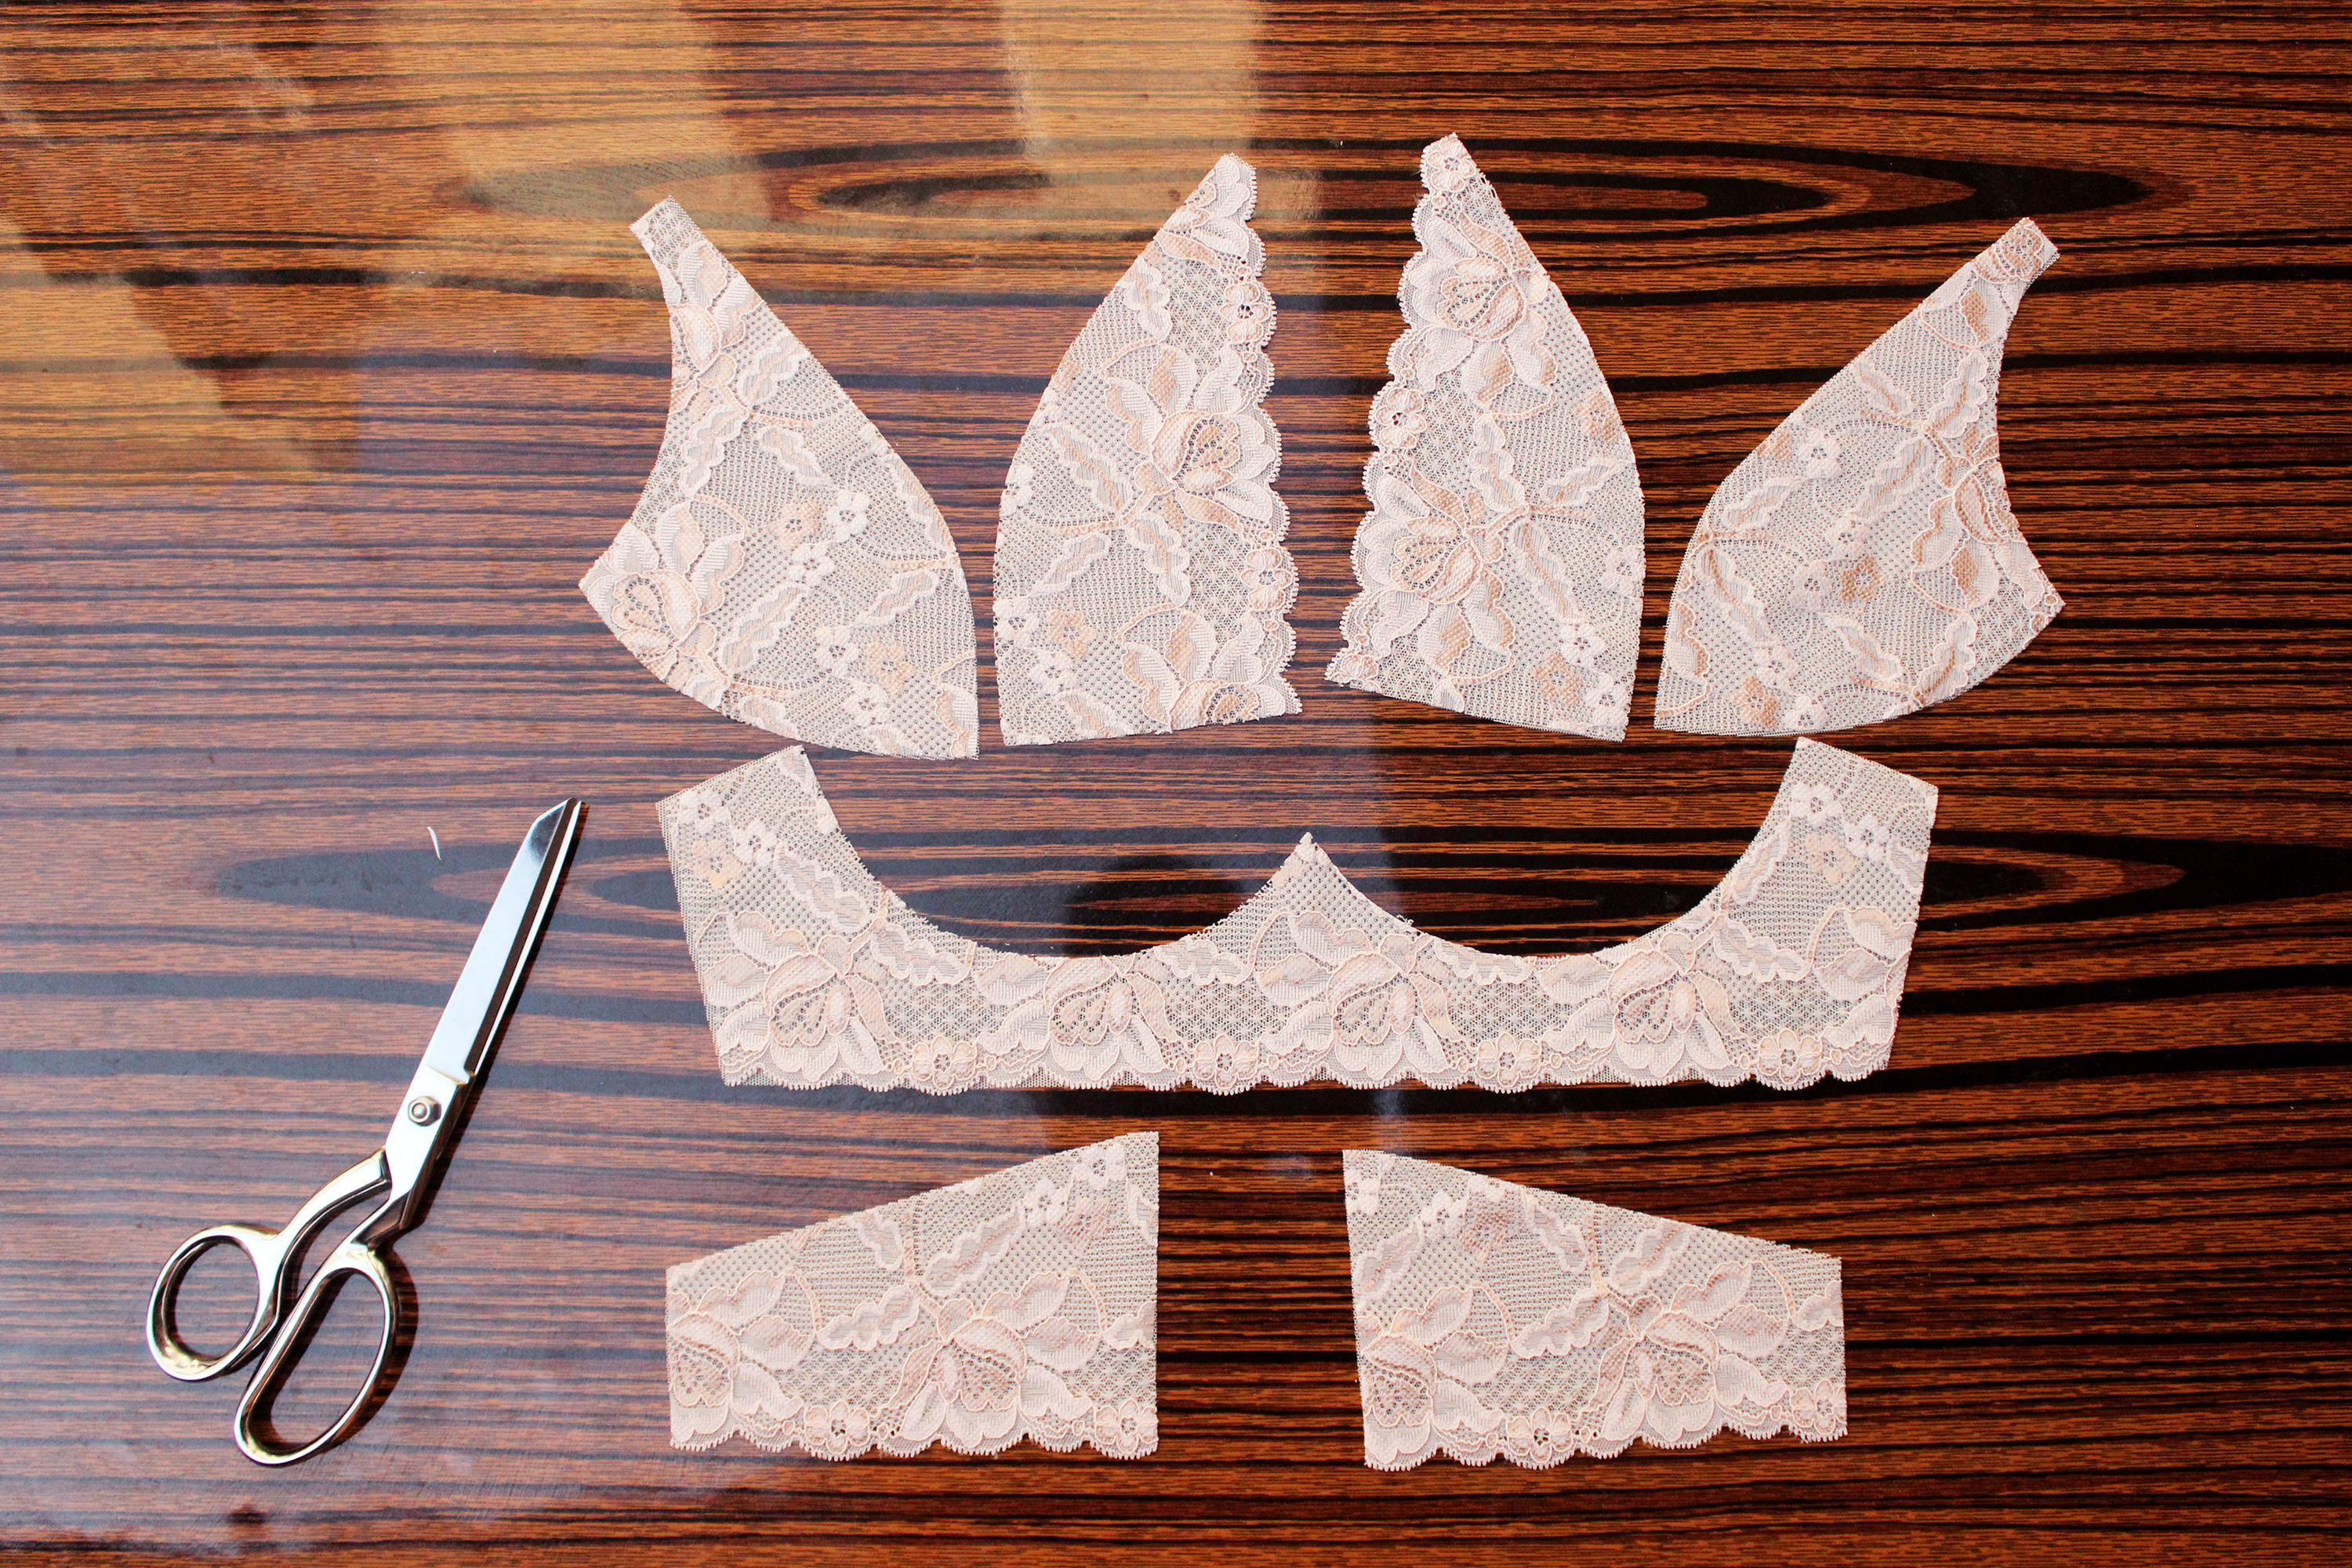 Bra Making Pattern Cutting